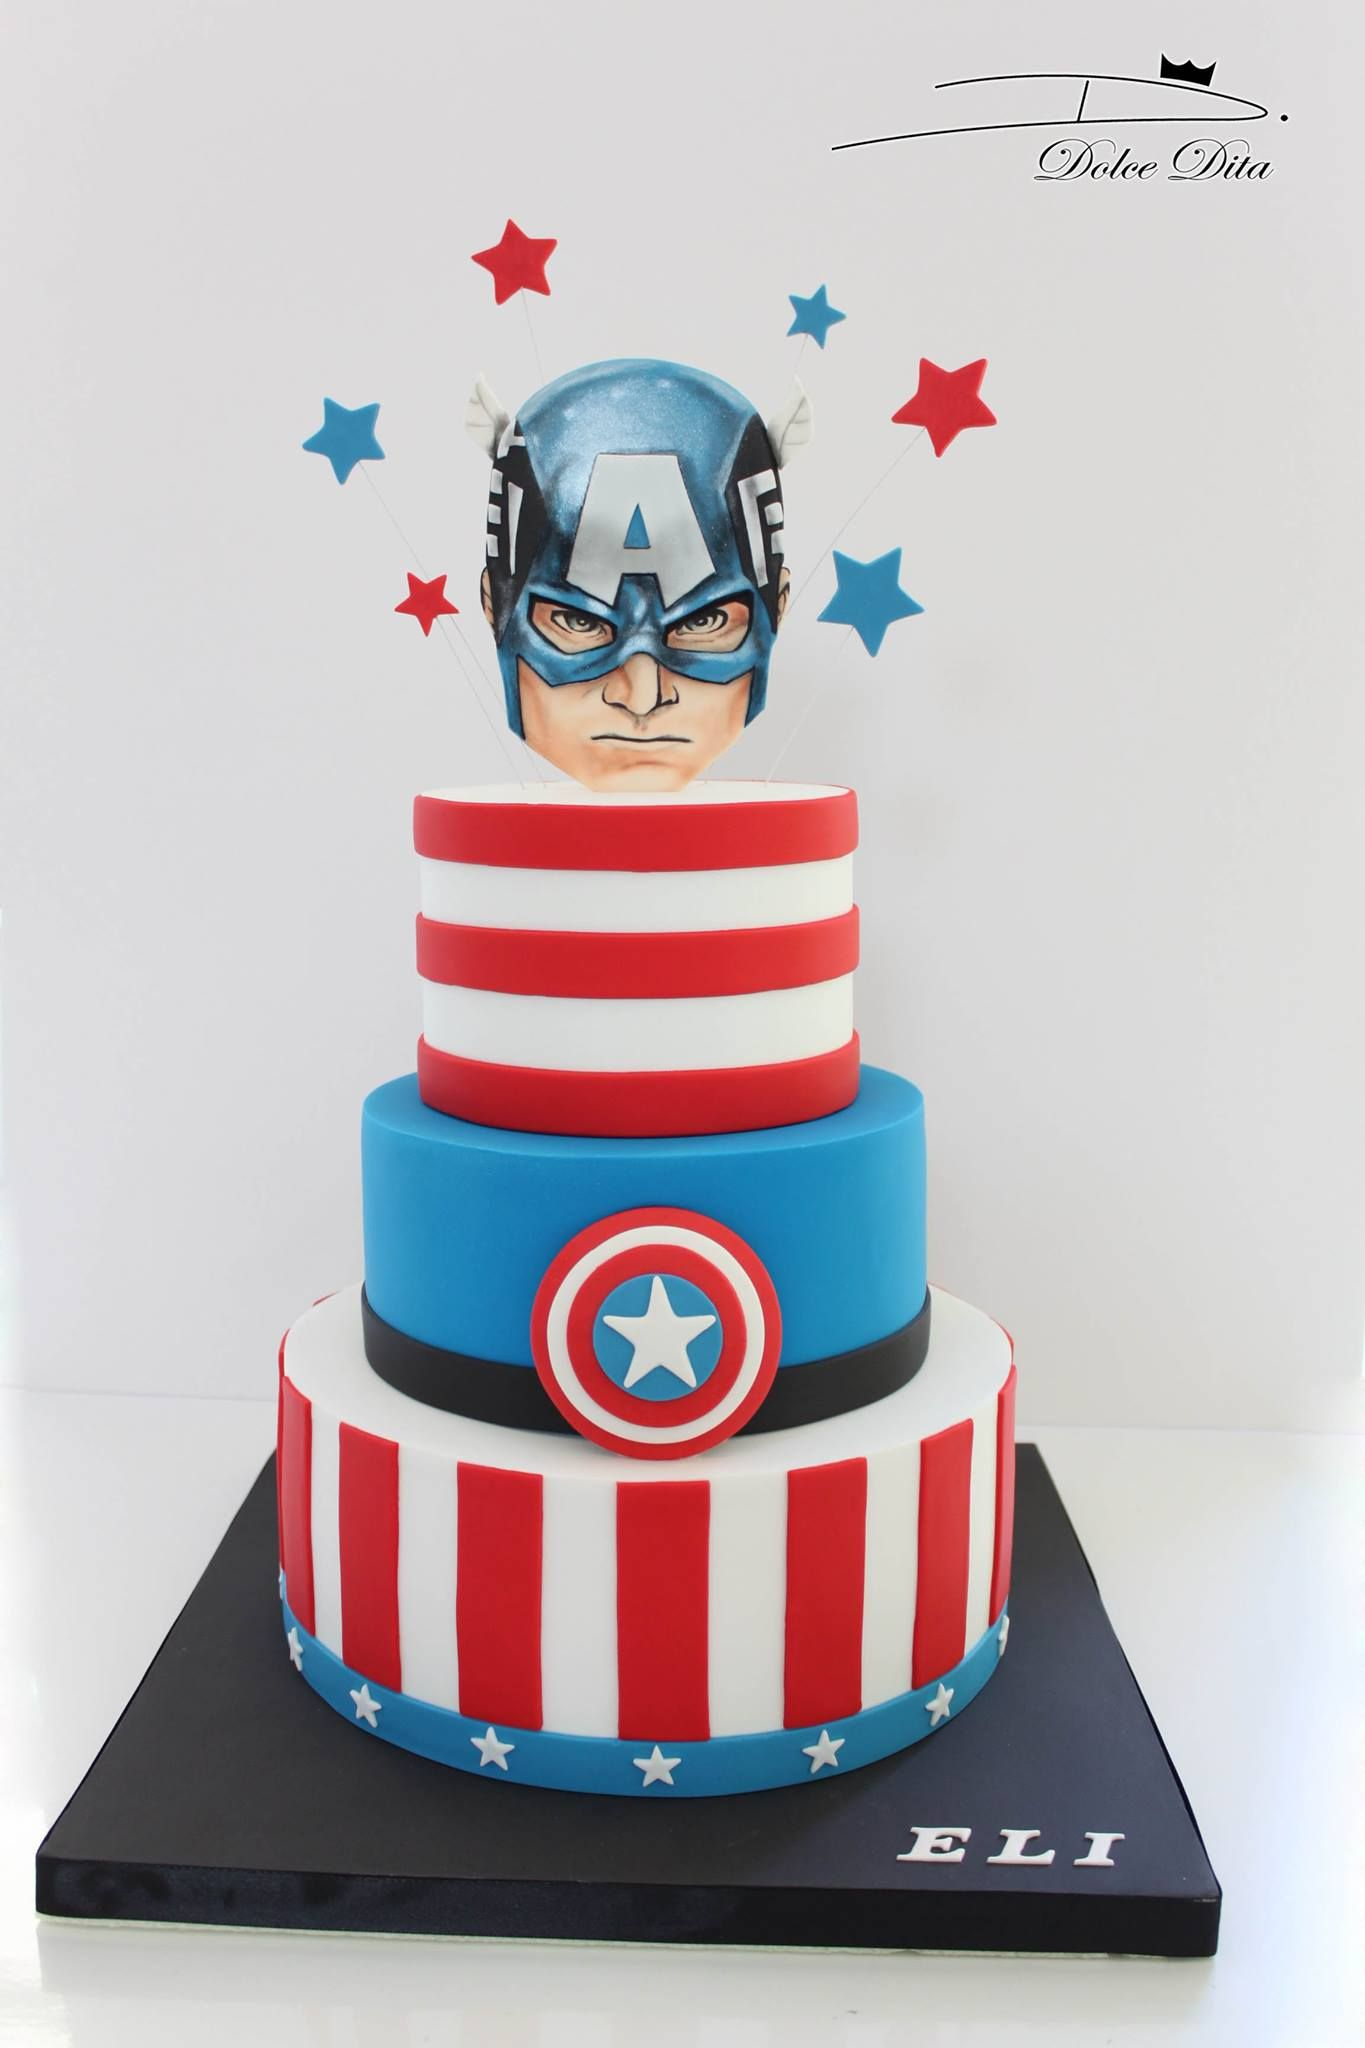 Tremendous Cake Cakedesign Gateau Dolcedita With Images Captain Funny Birthday Cards Online Alyptdamsfinfo